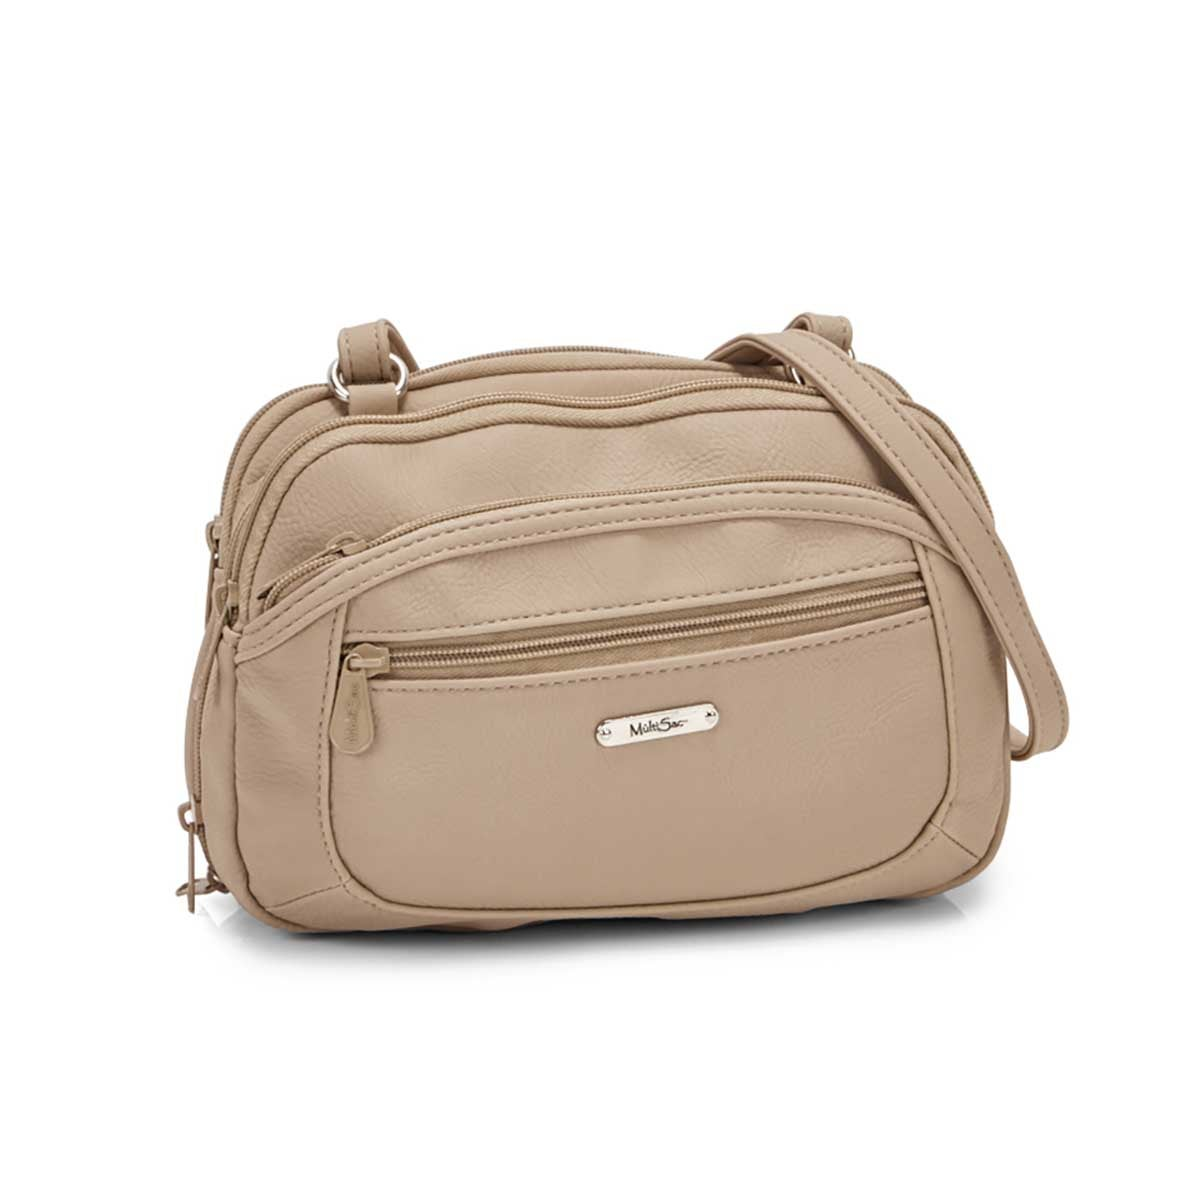 Lds Terabyte clsc taupe cross body